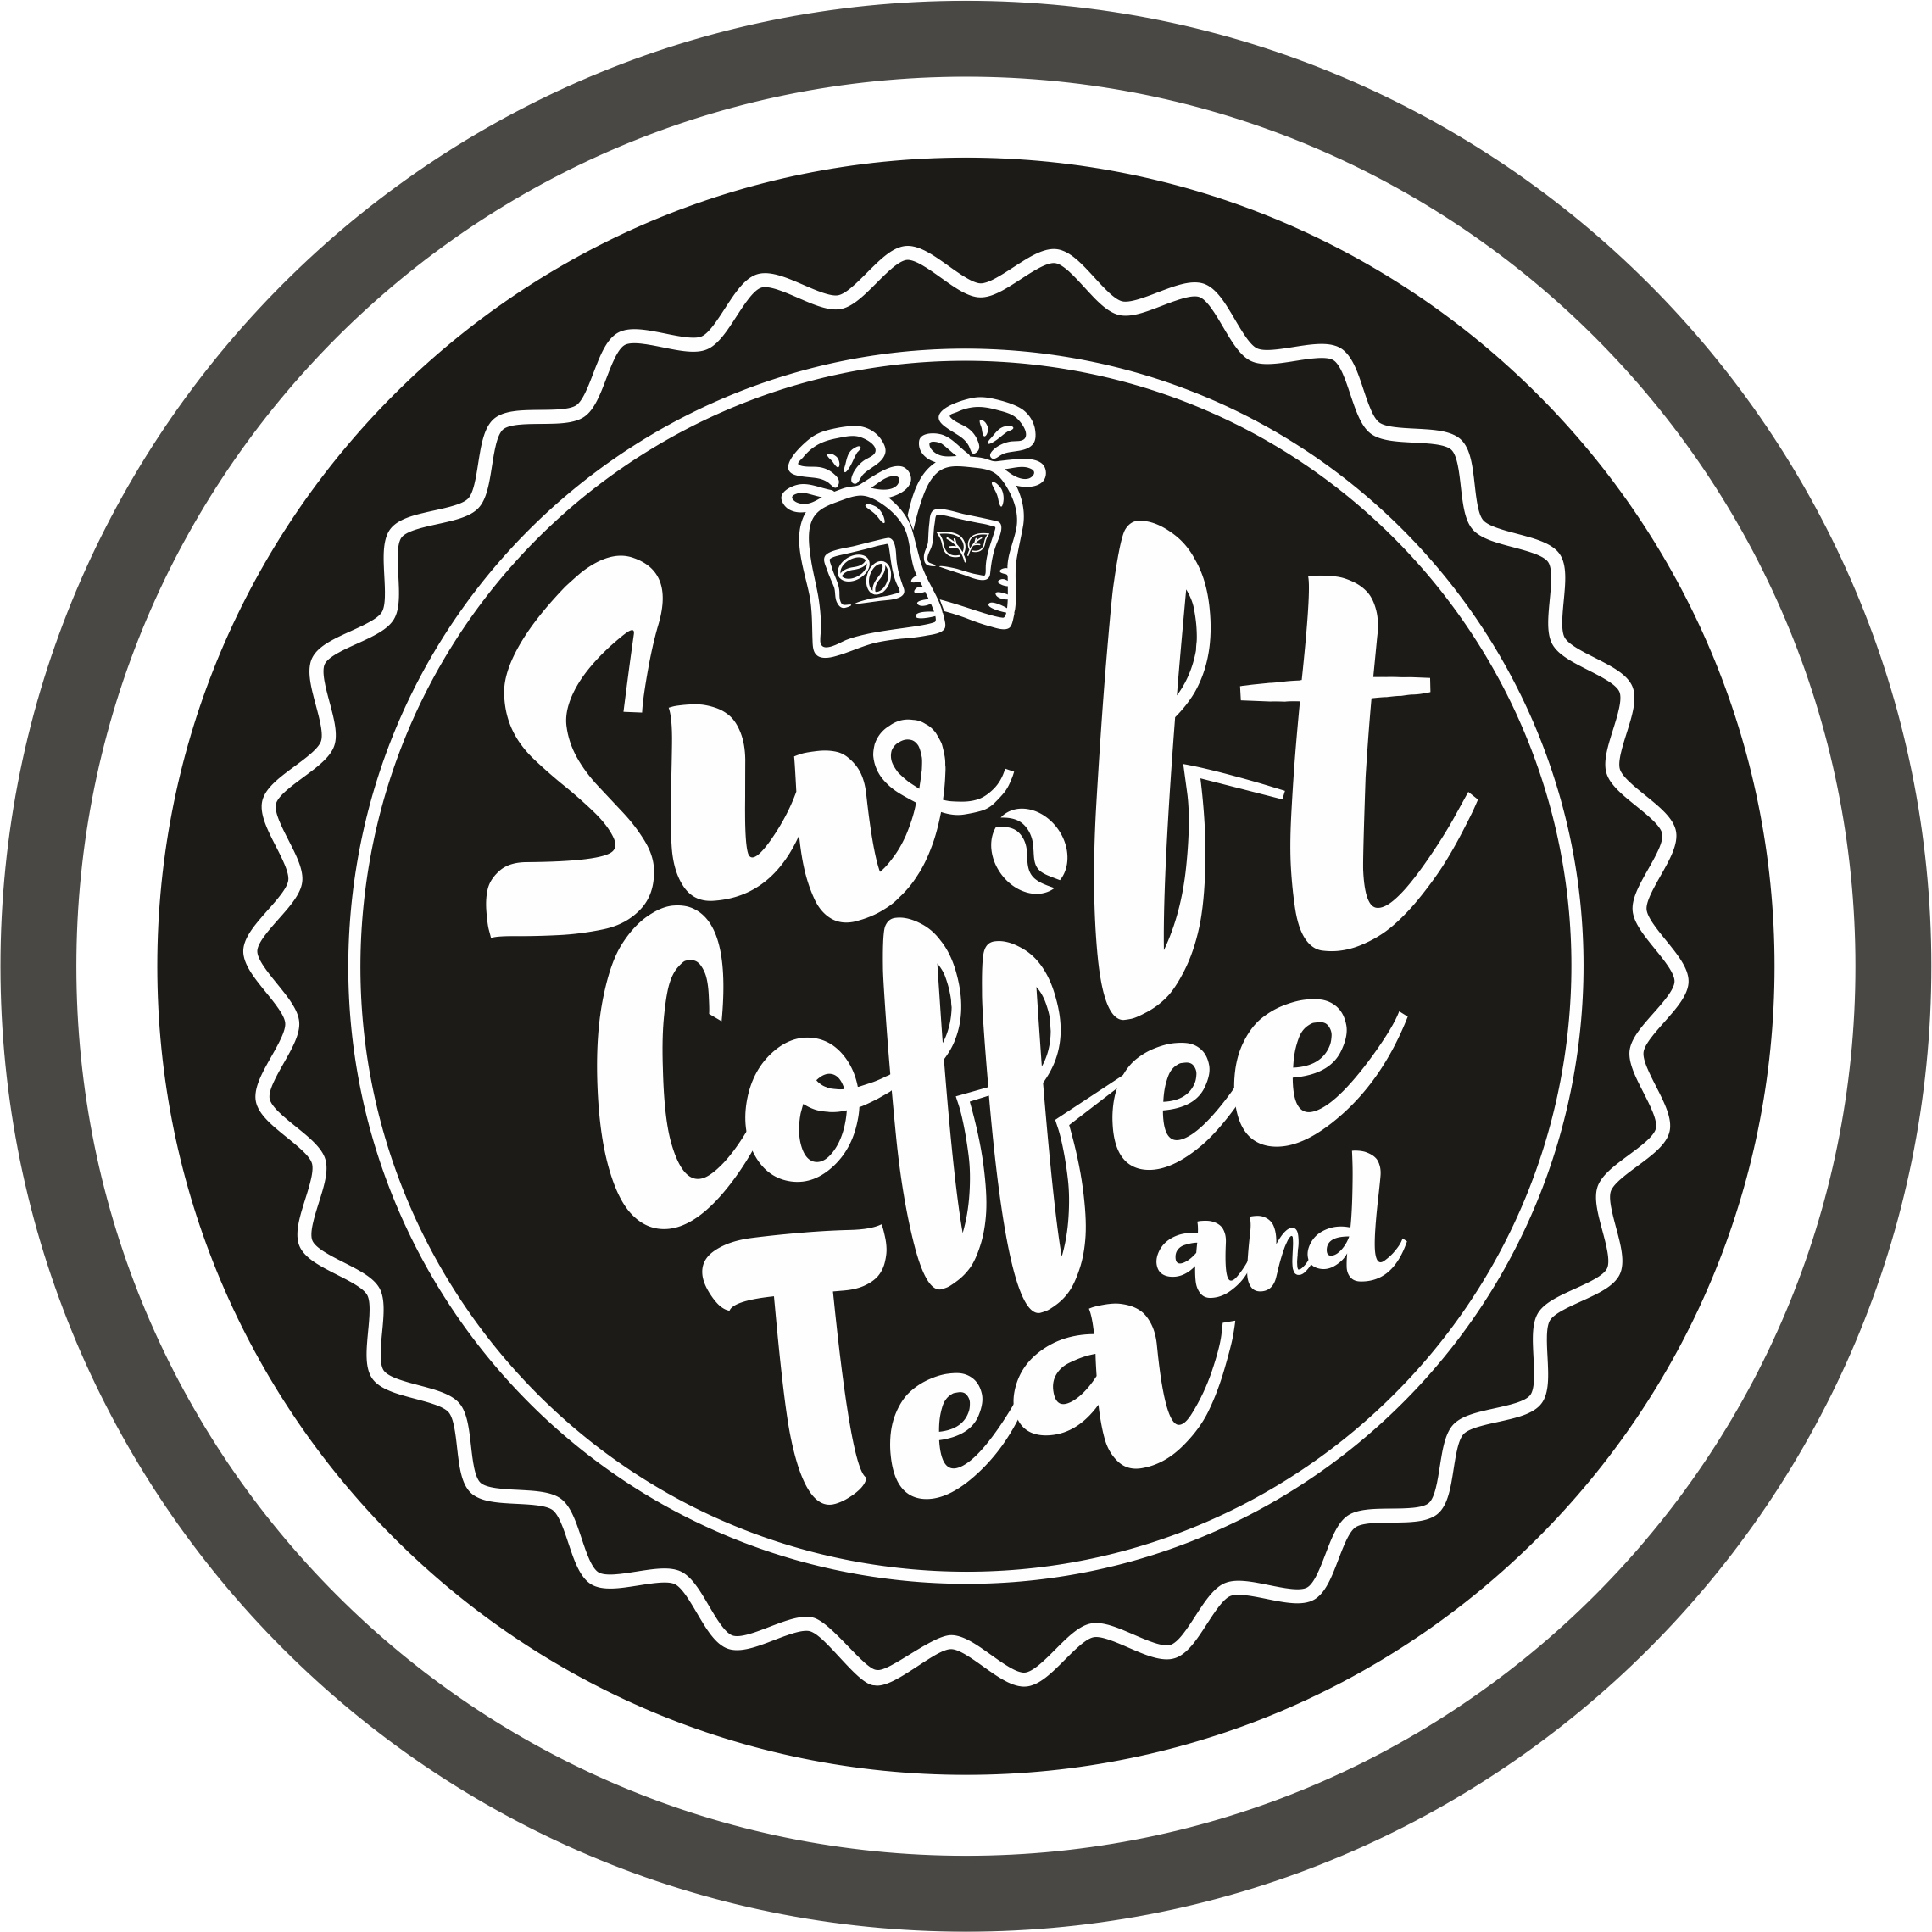 Swift Coffee and Tea